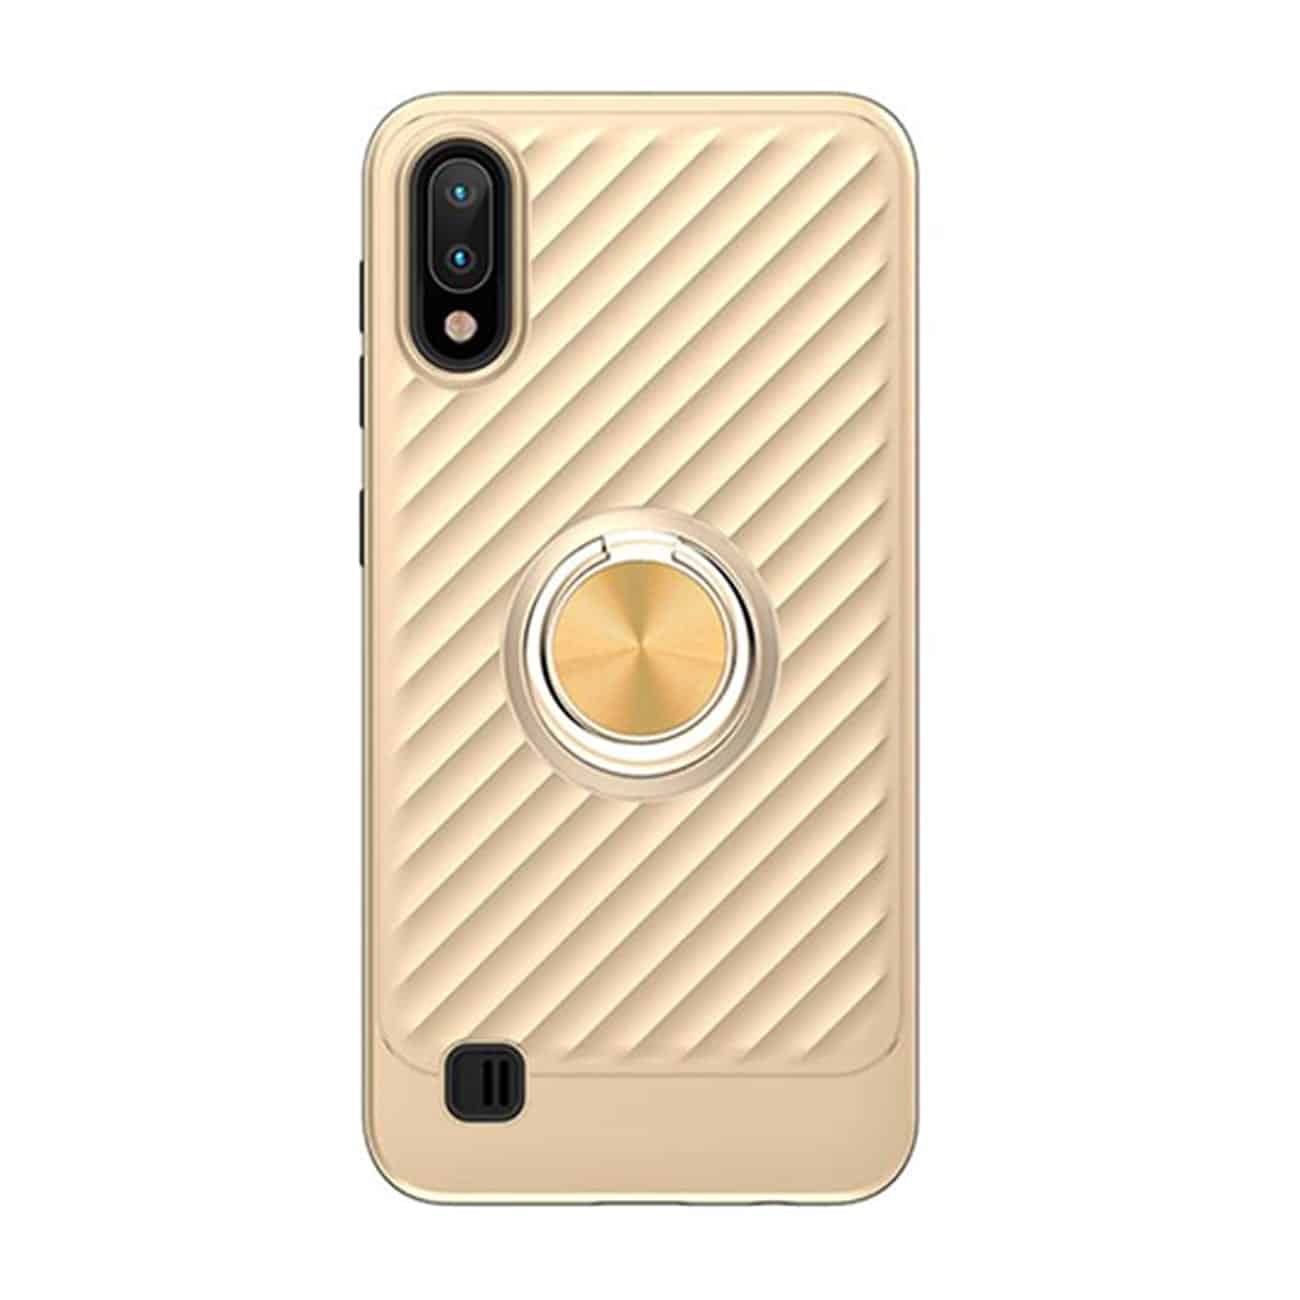 SAMSUNG GALAXY A10/M10 Case with Ring Holder In Gold